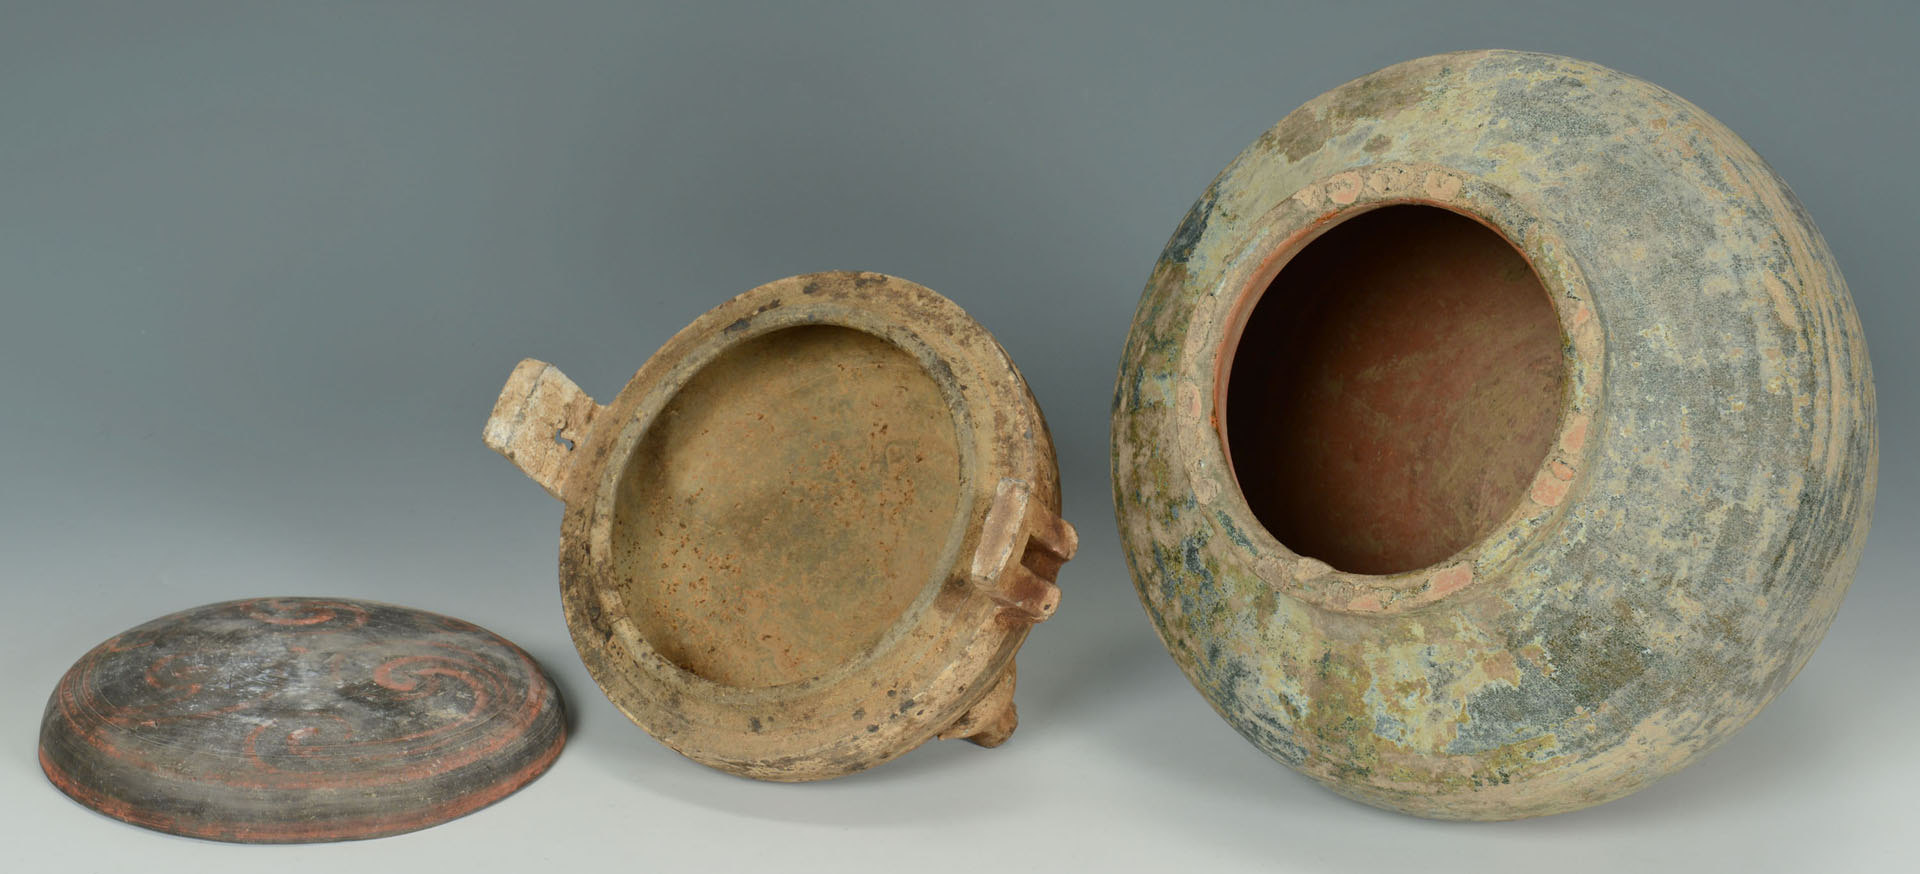 Lot 3088300: 2 Chinese Han Dynasty Pottery Vessels